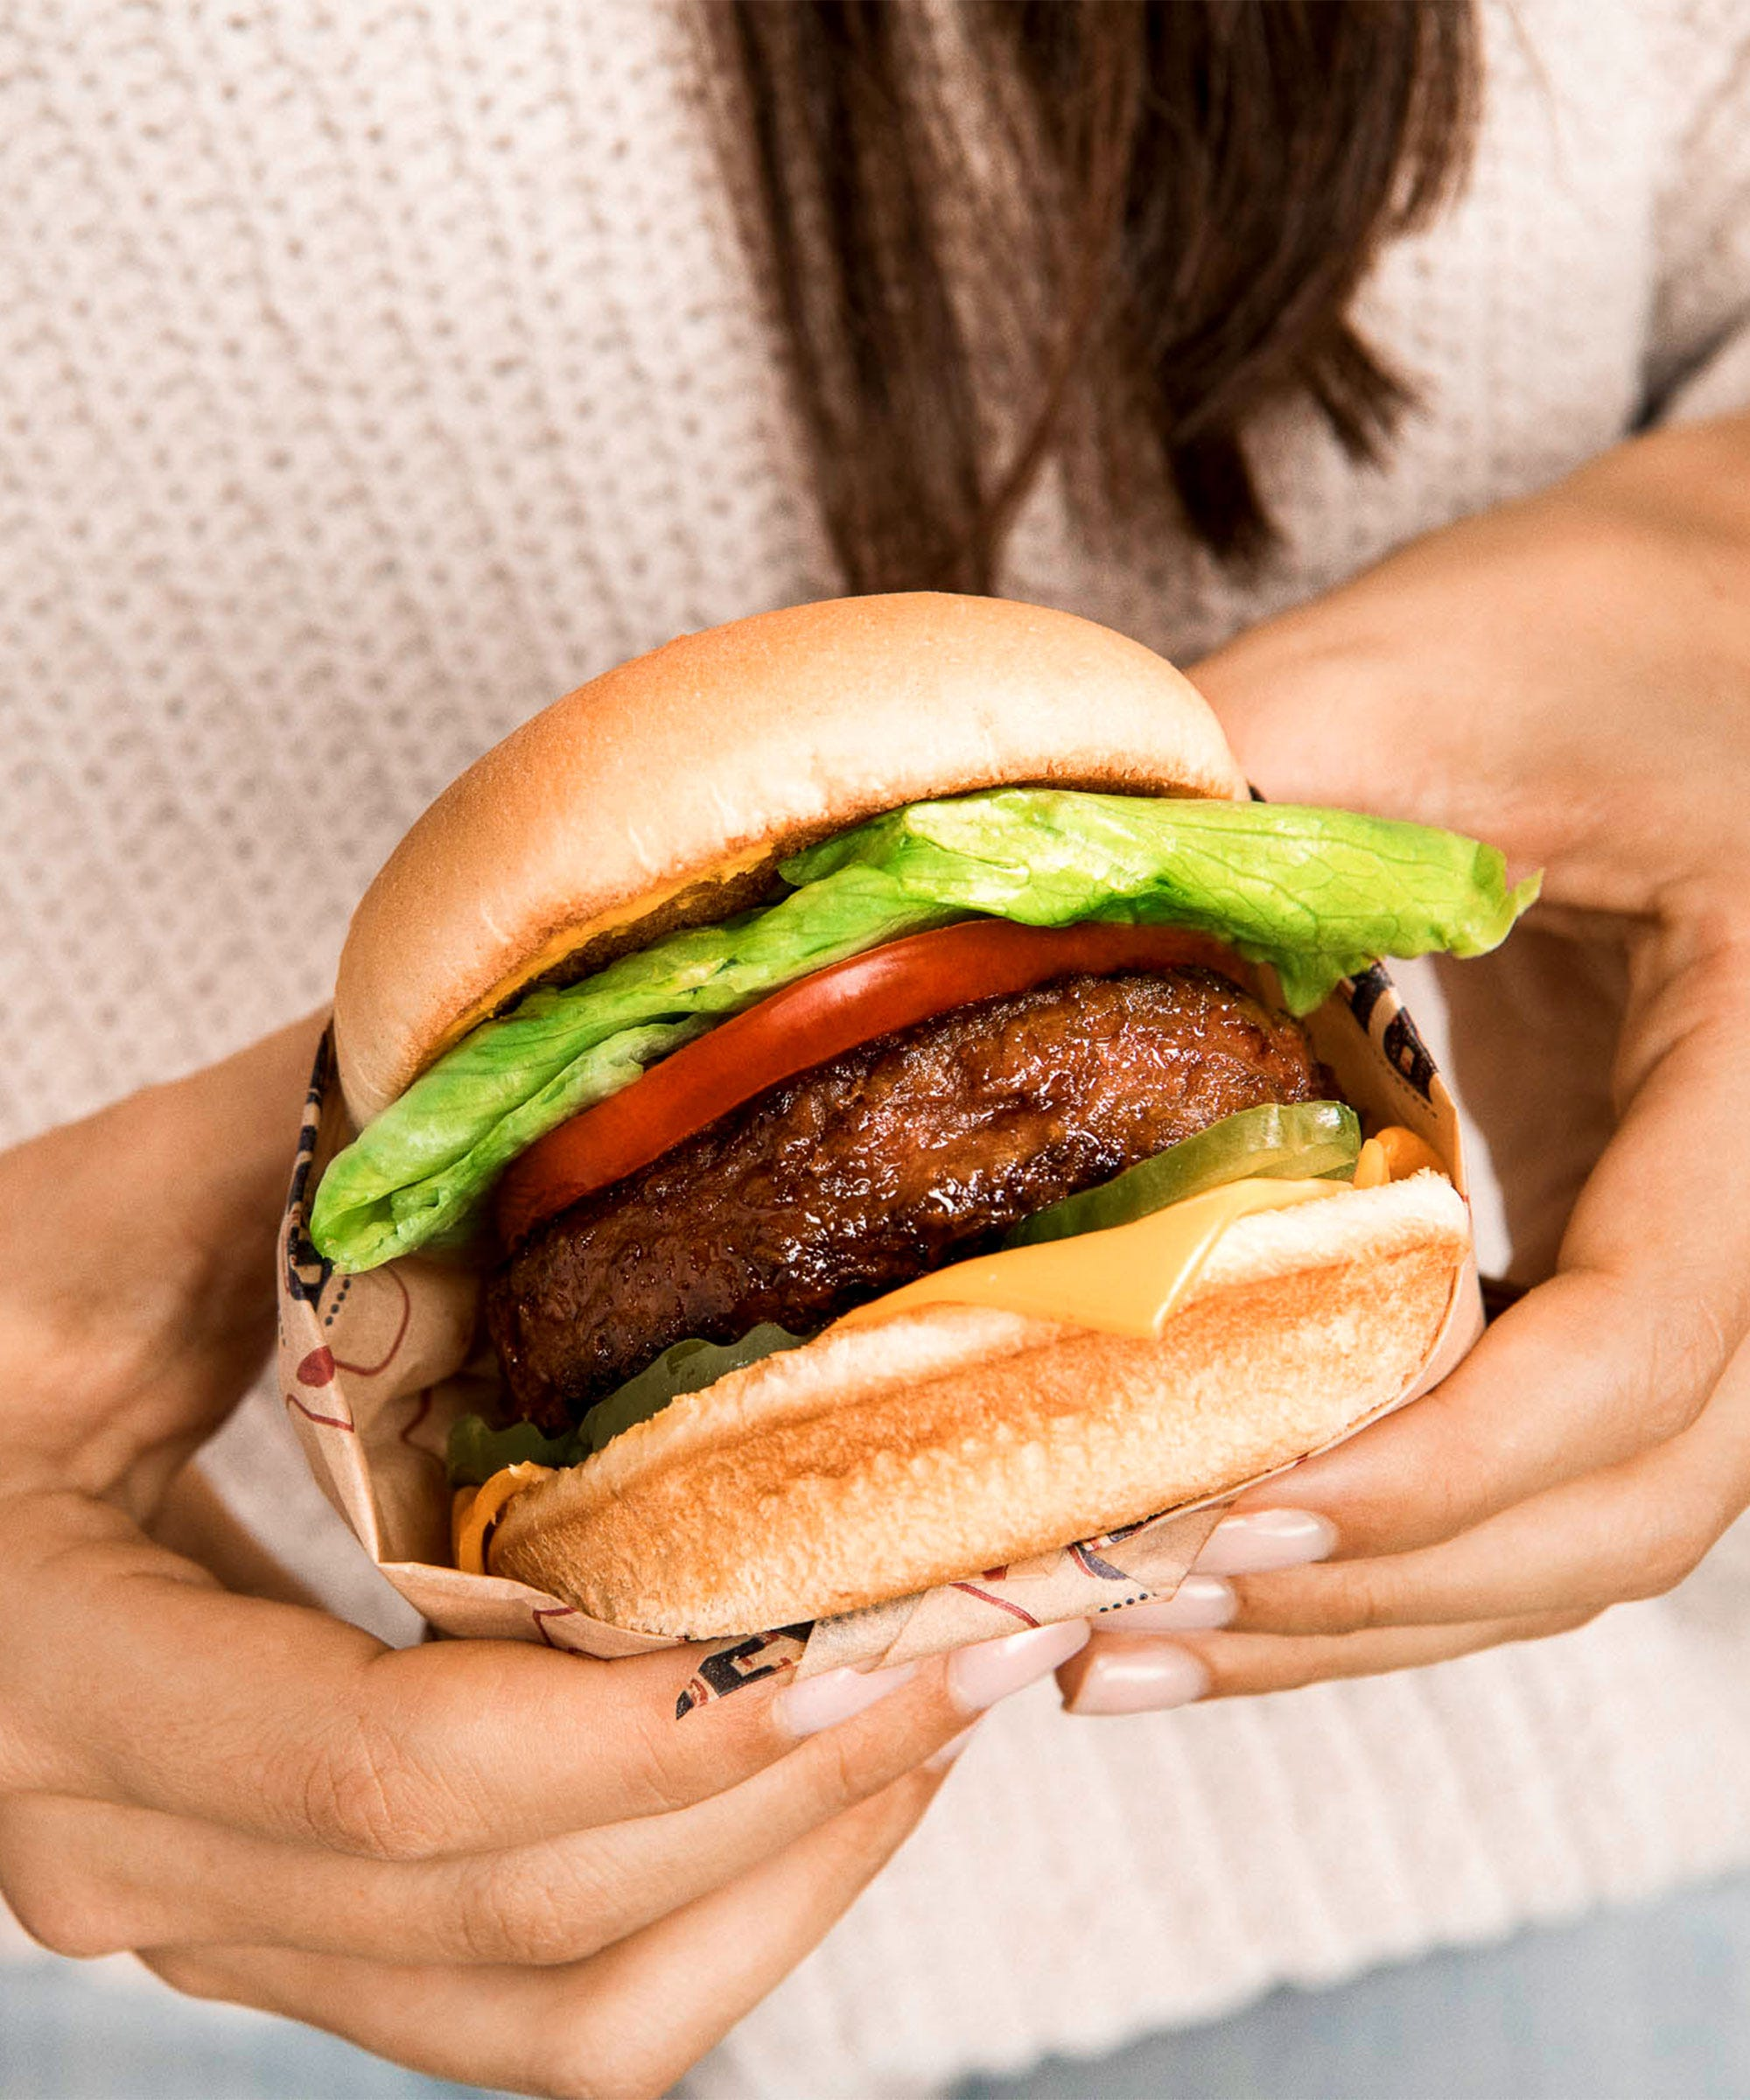 Is Beyond Meat Healthy? Nutrition Facts, Side Effects